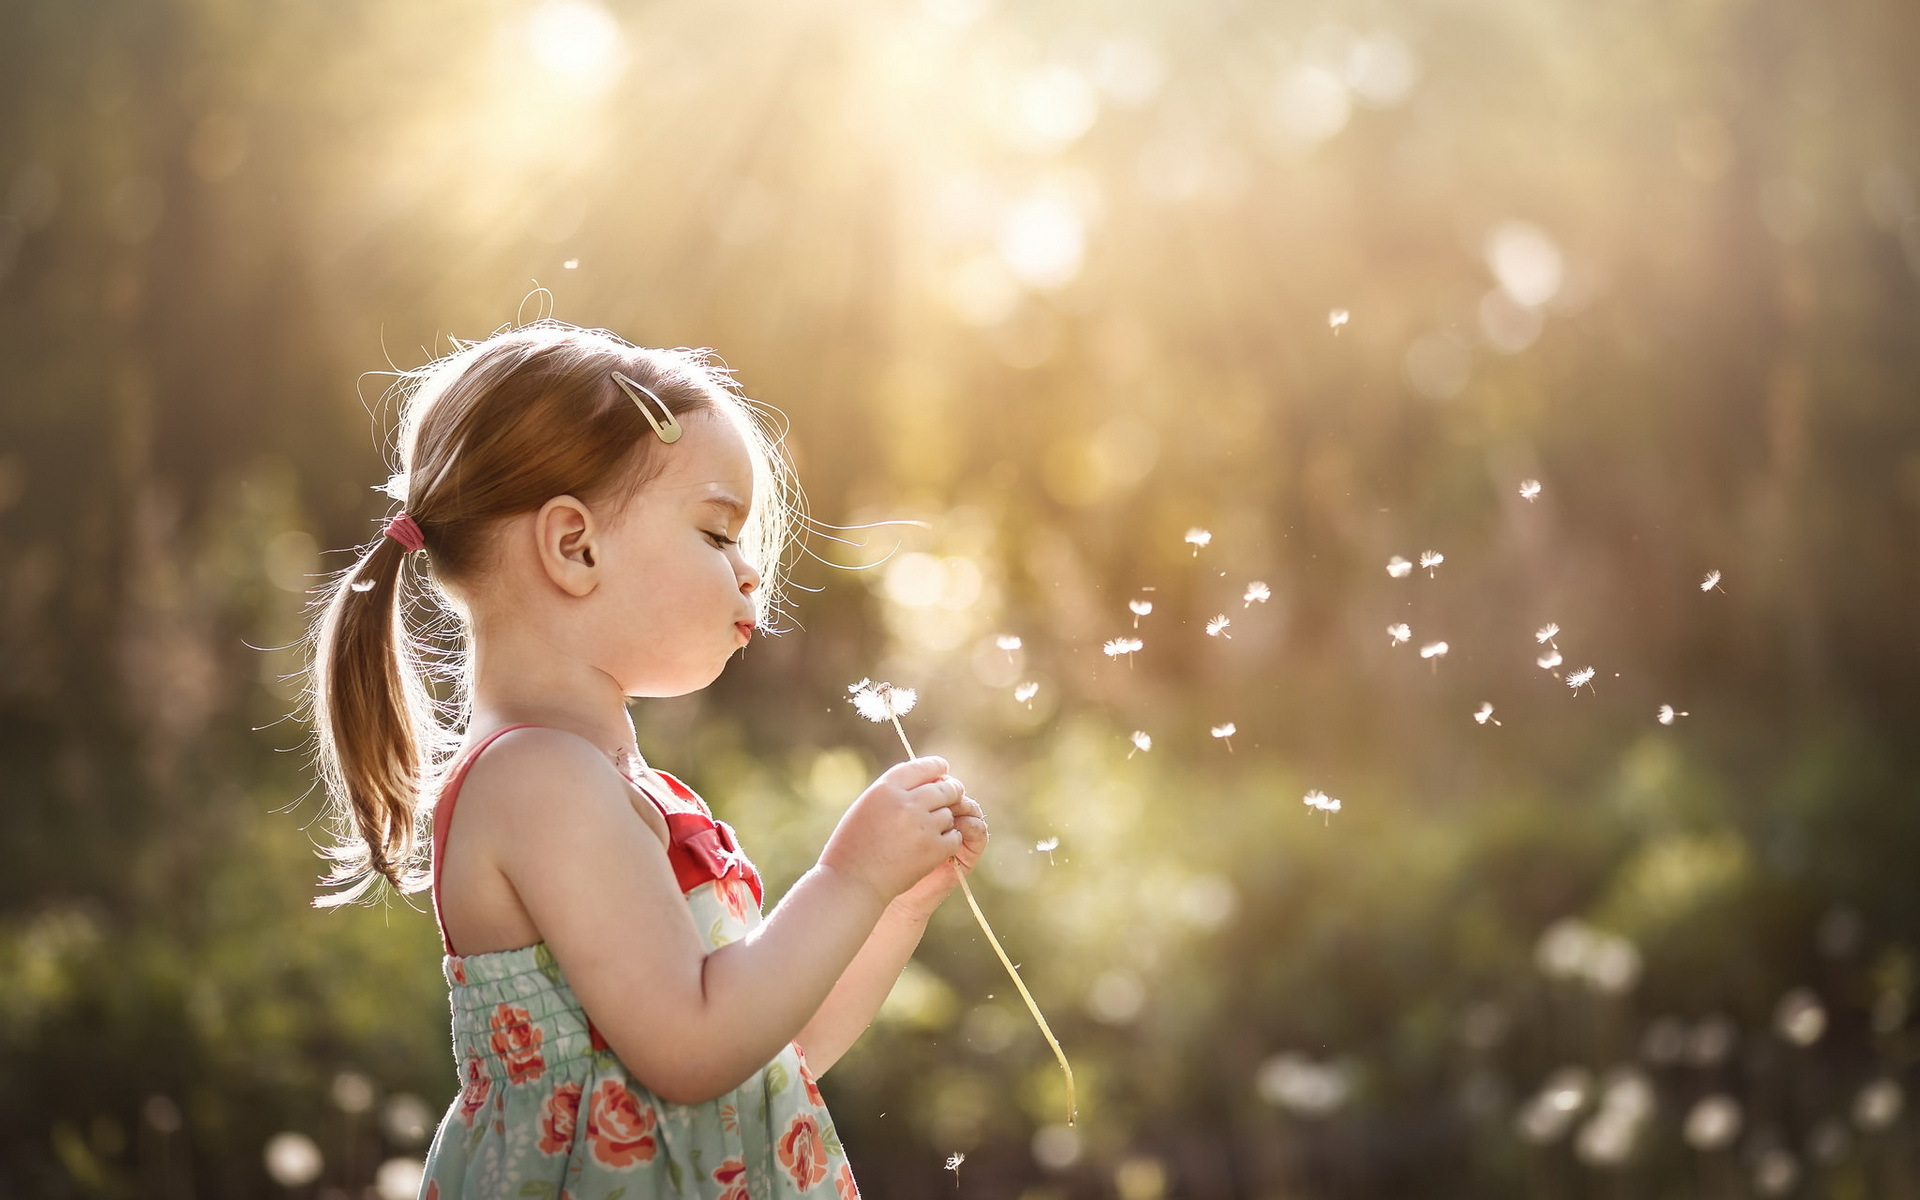 Child hd wallpaper background image 1920x1200 id - Dandelion hd wallpapers 1080p ...